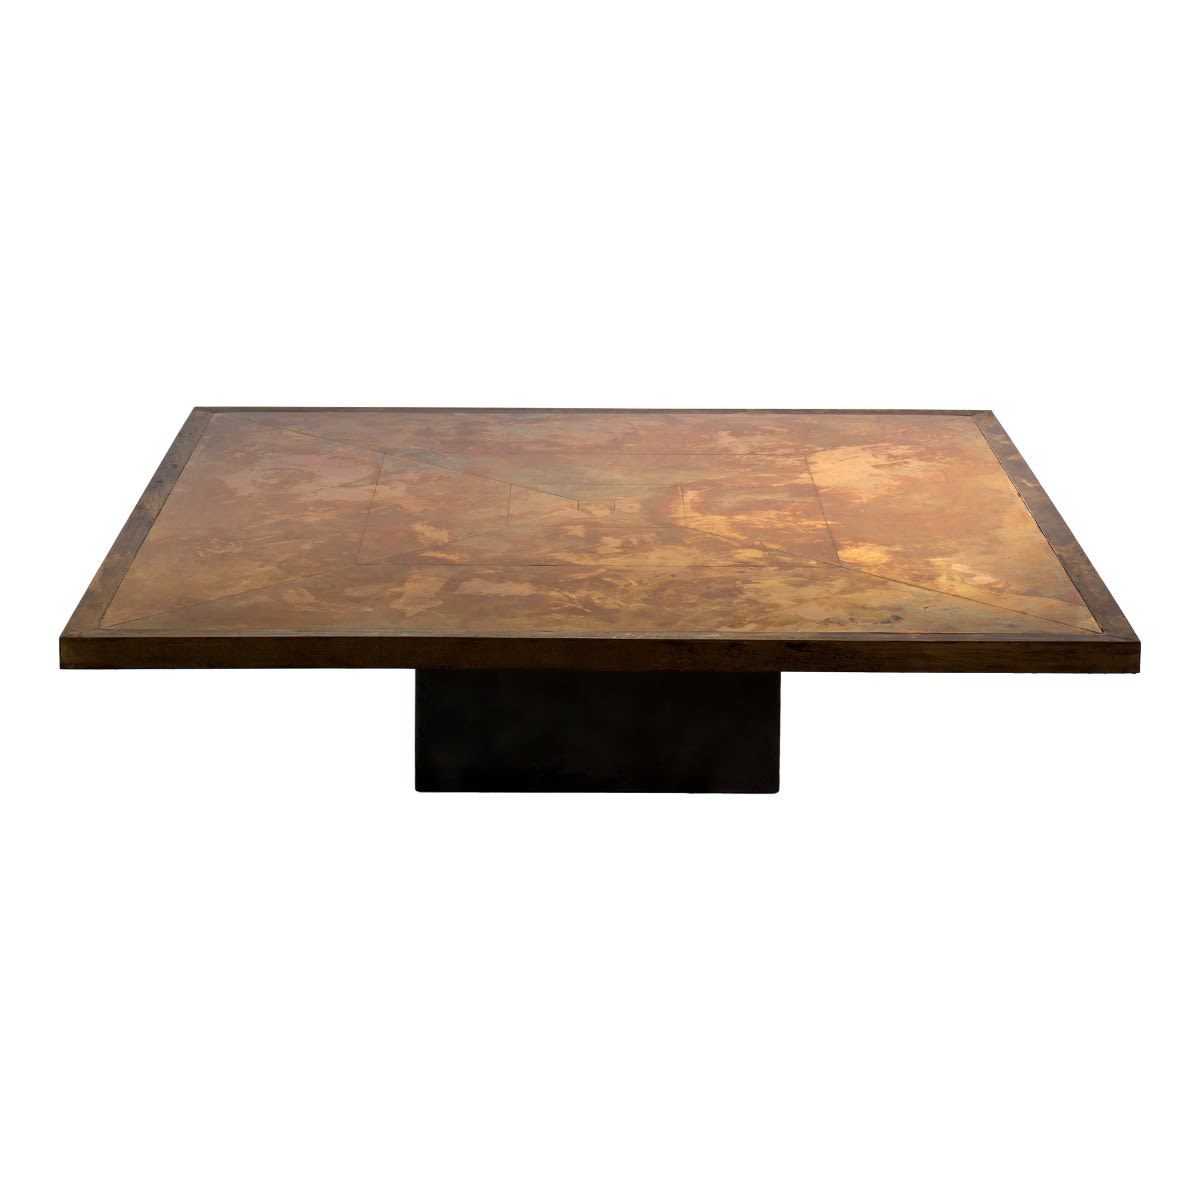 - The Bronze Coffee Table